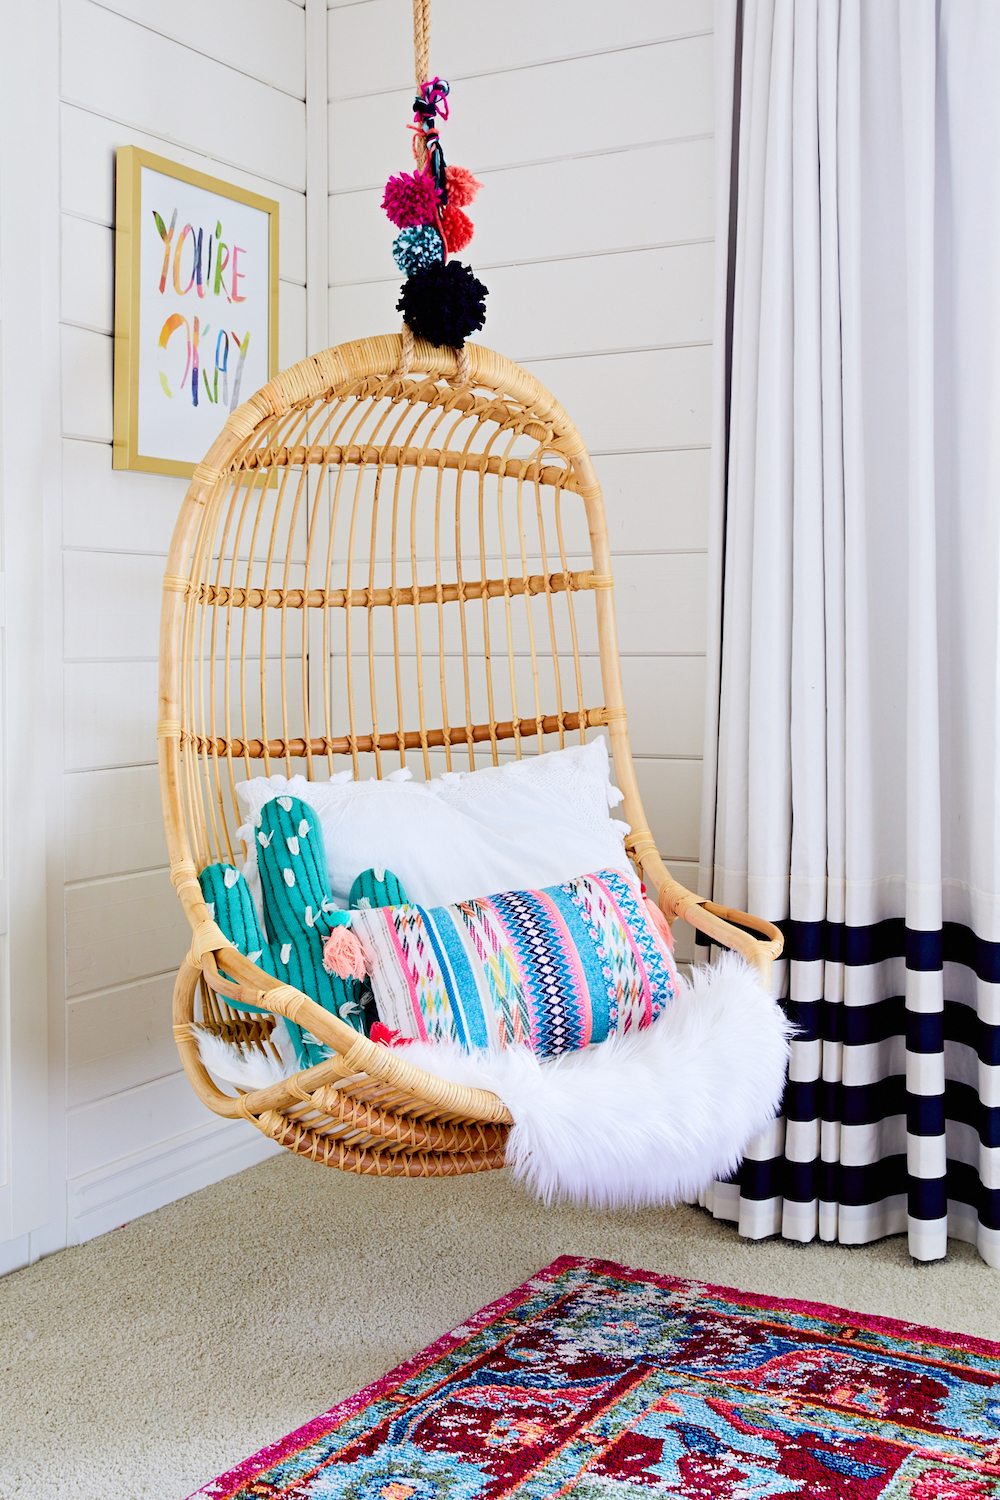 Boho Chic Girl's Room with Hanging Chair